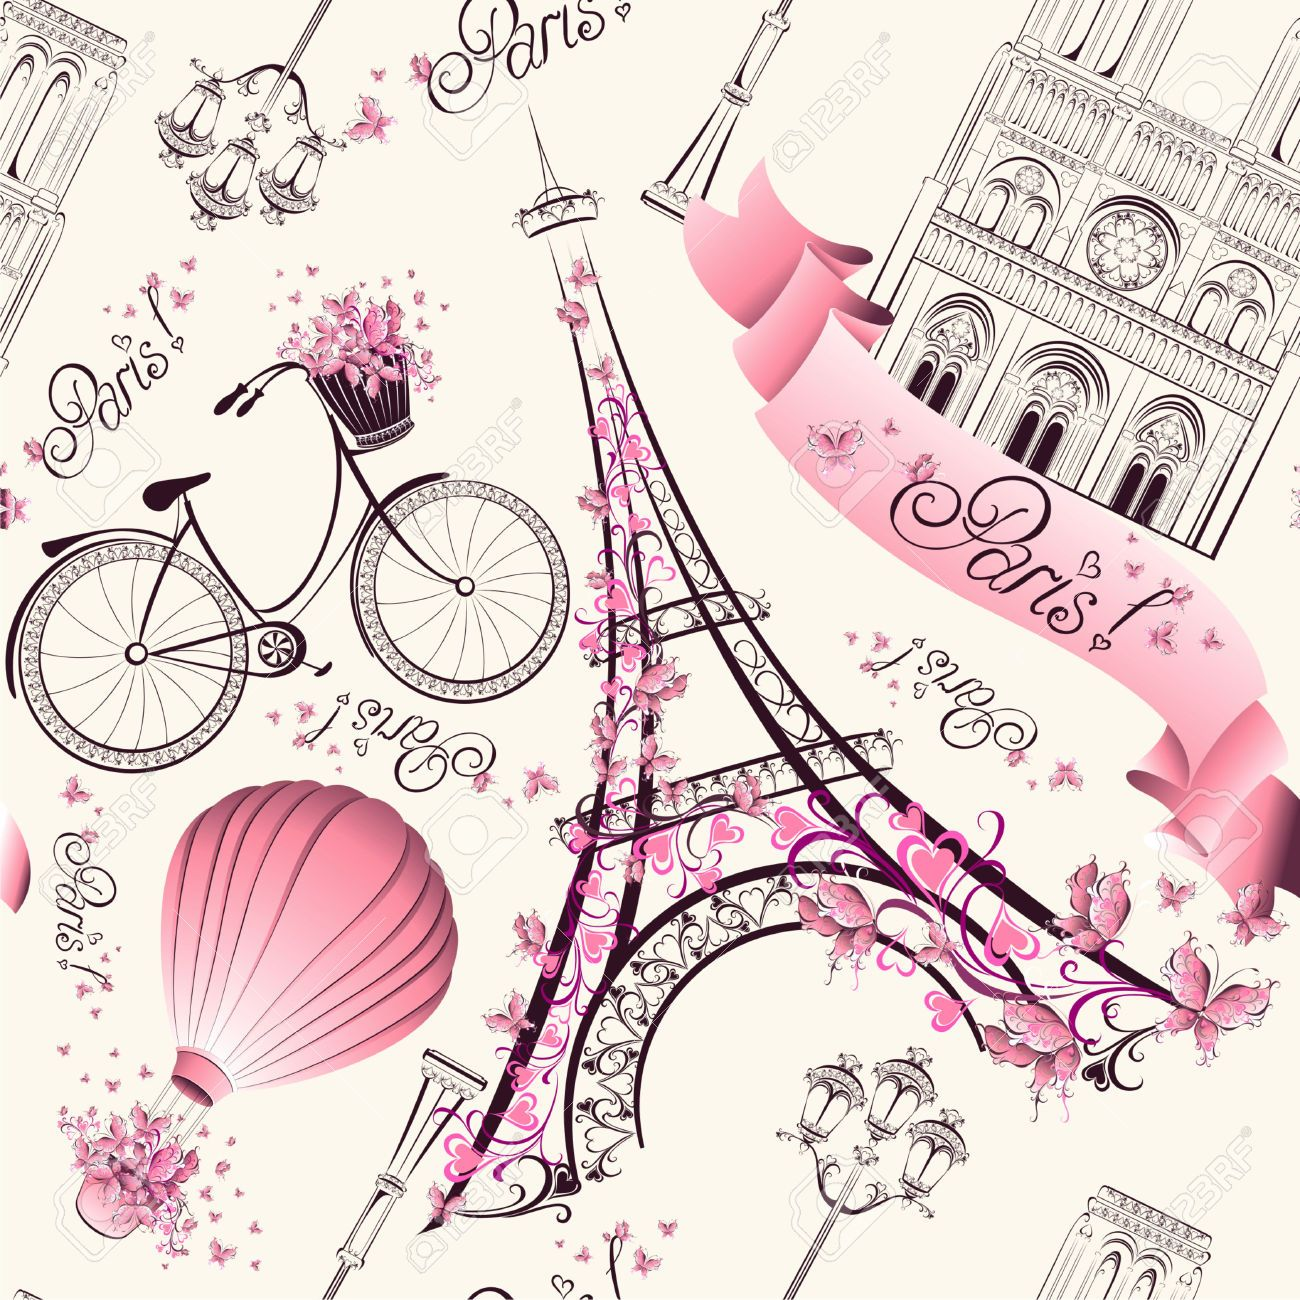 I Love Paris Wallpaper cartoon : Paris cliparts, Stock Vector And Royalty Free Paris Illustrations